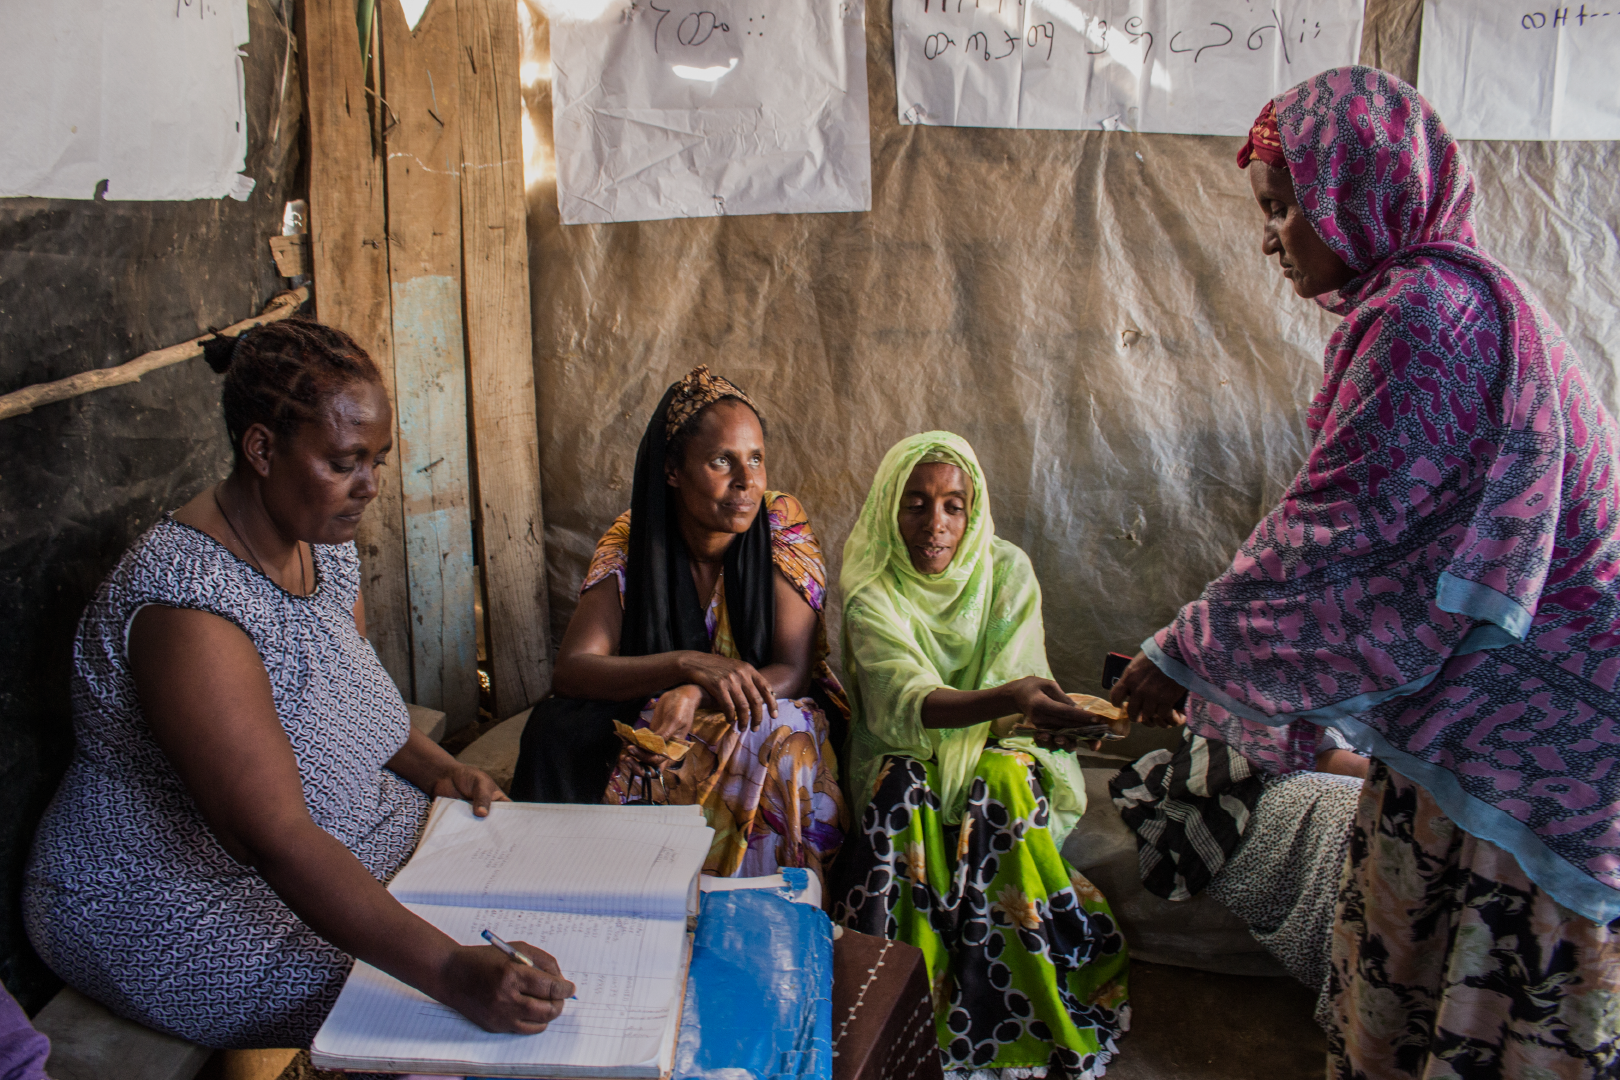 Members of a self-help group in Ethiopia keep detailed records on savings and loan progress.